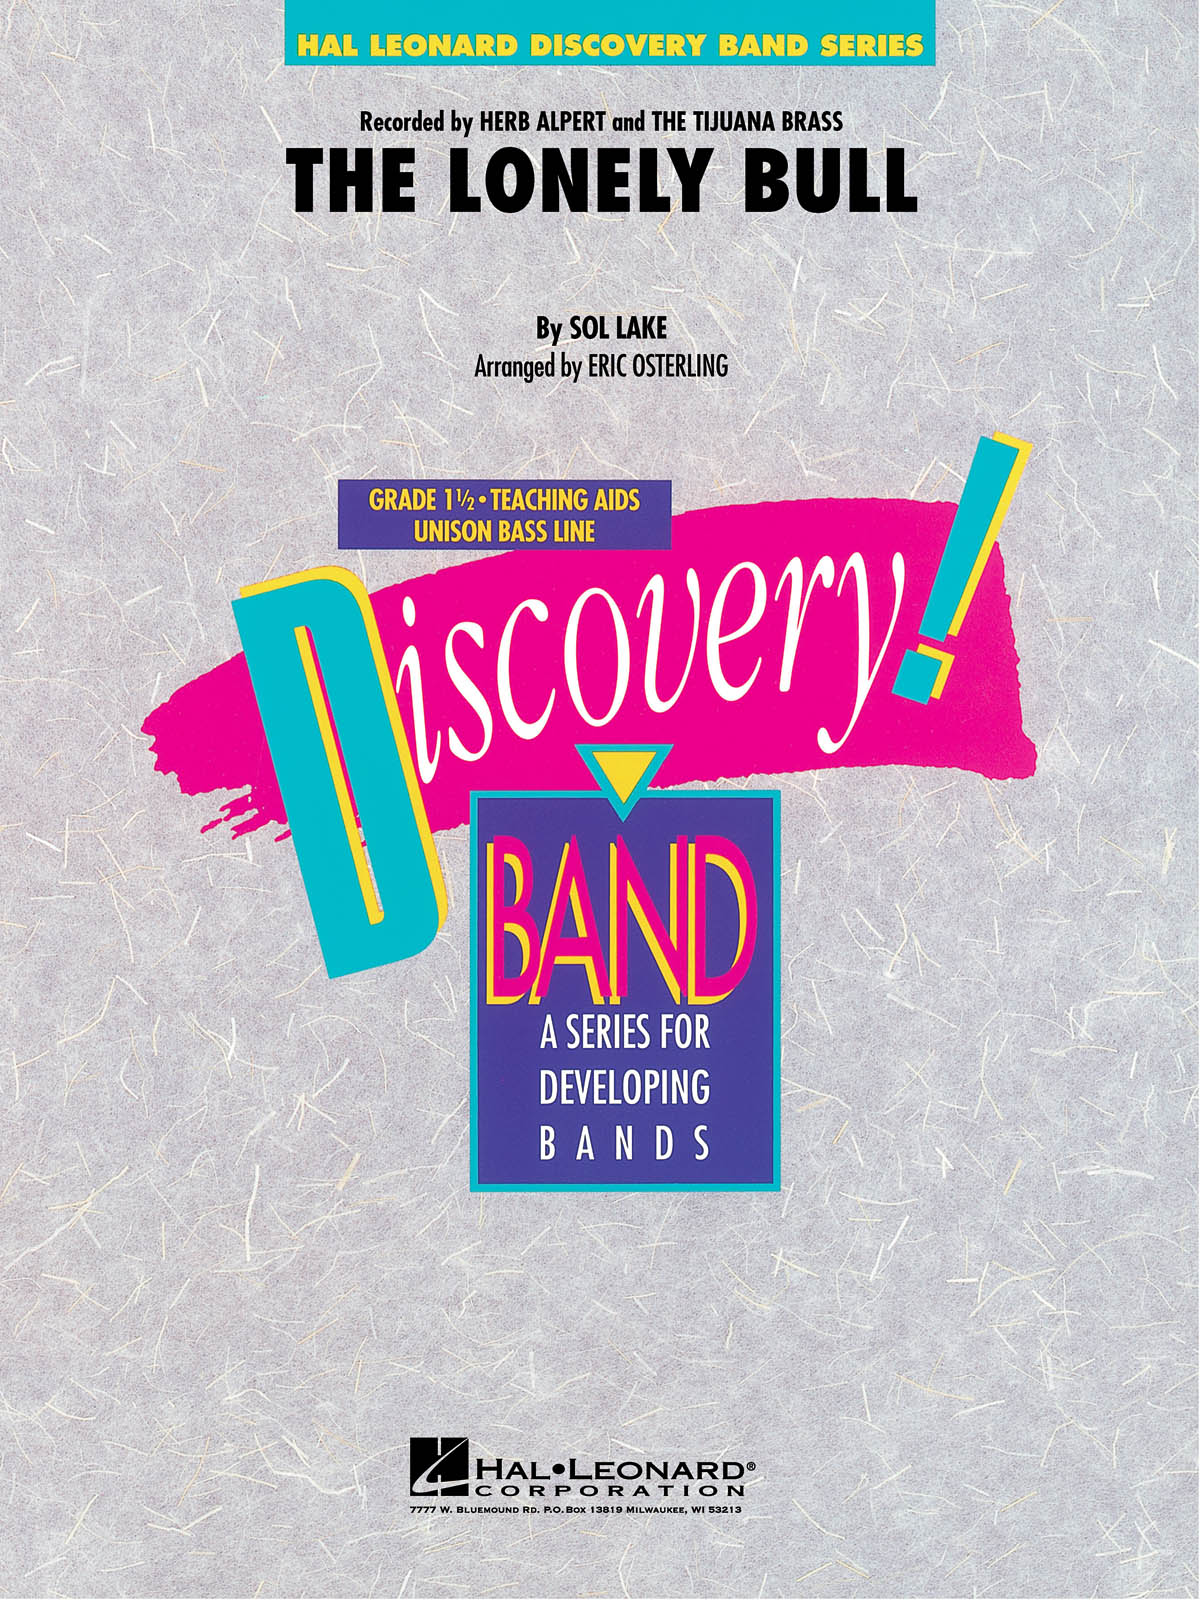 Herb Alpert: The Lonely Bull: Concert Band: Score & Parts